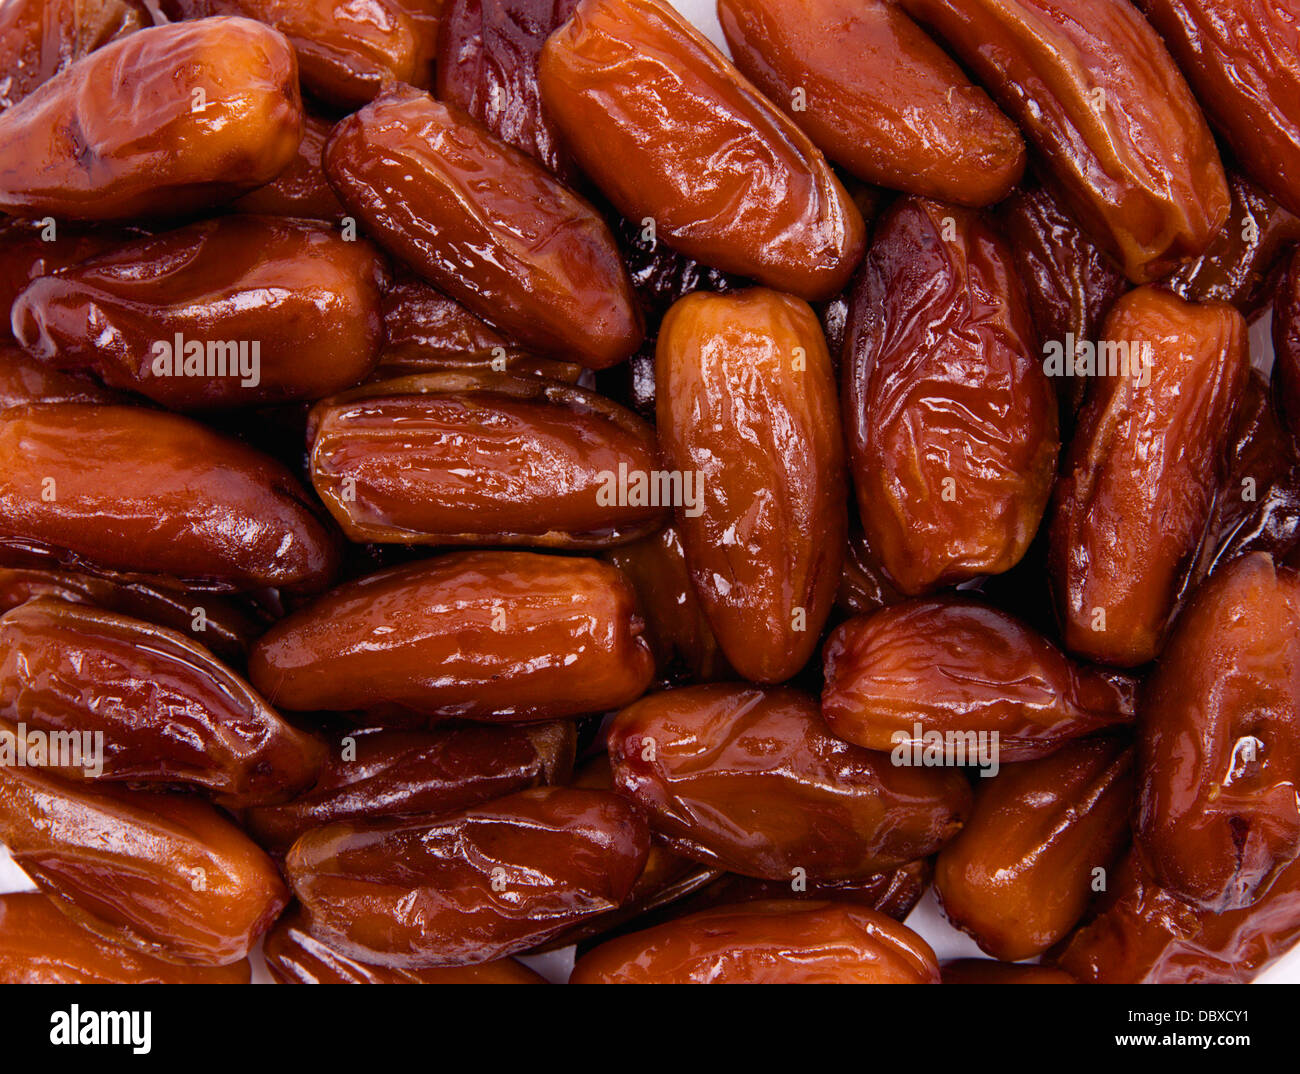 Dried date fruits background - Stock Image